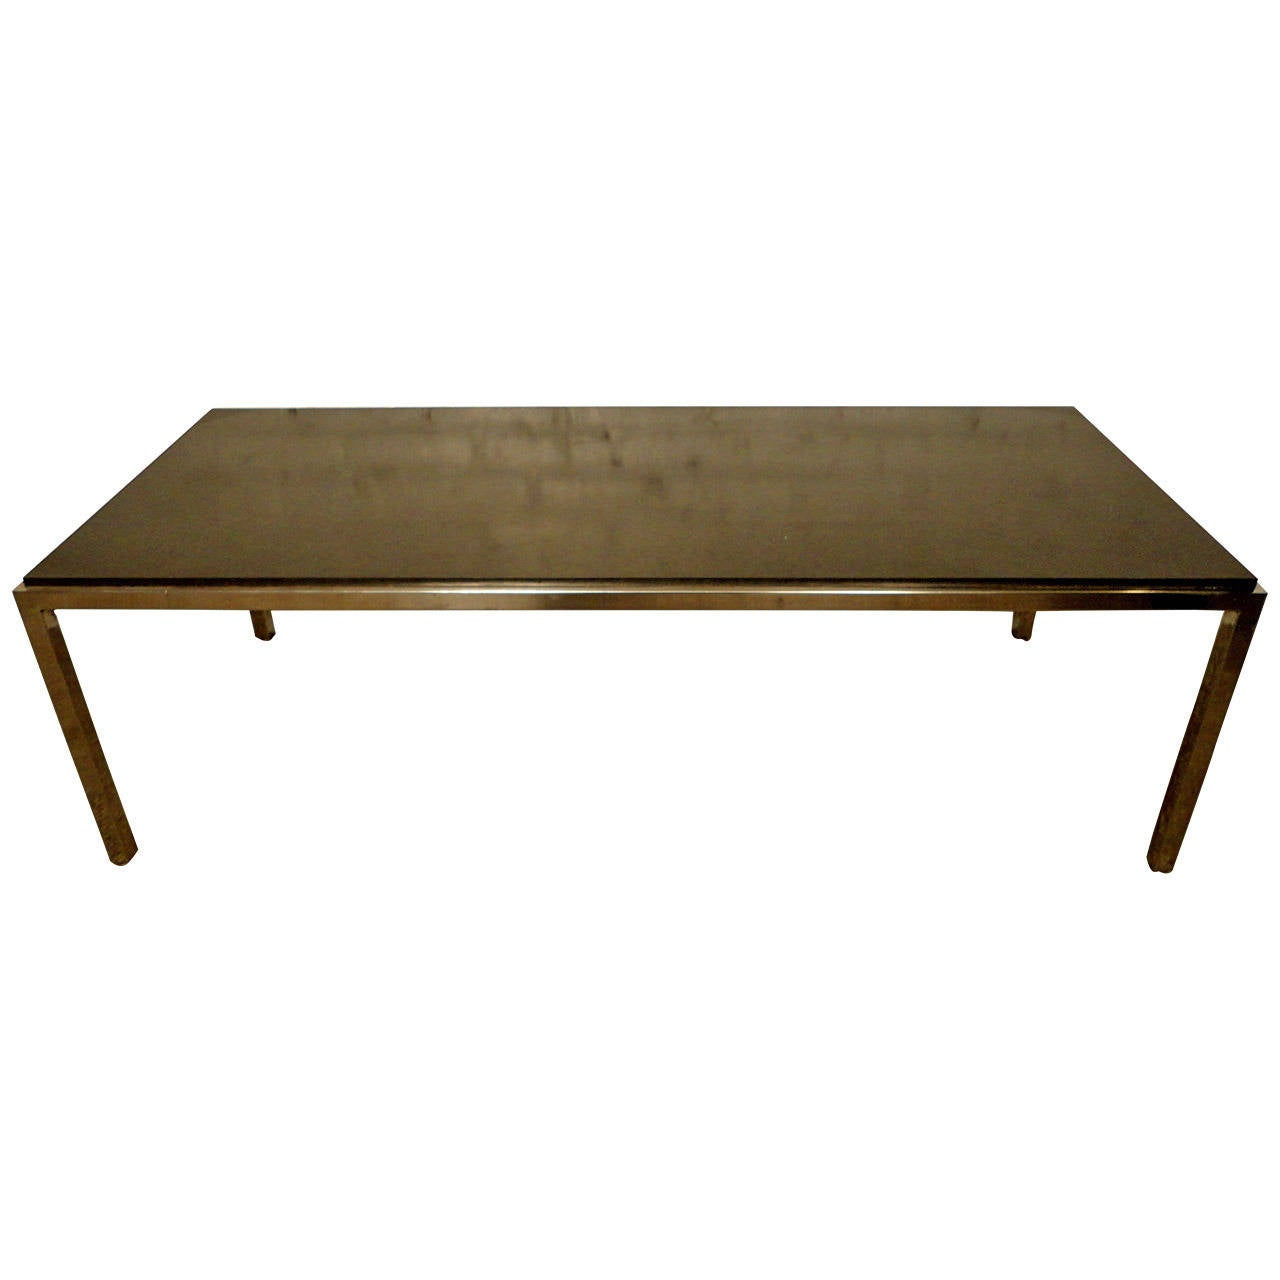 Sleek Mid Century Coffee Table By Directional At 1stdibs